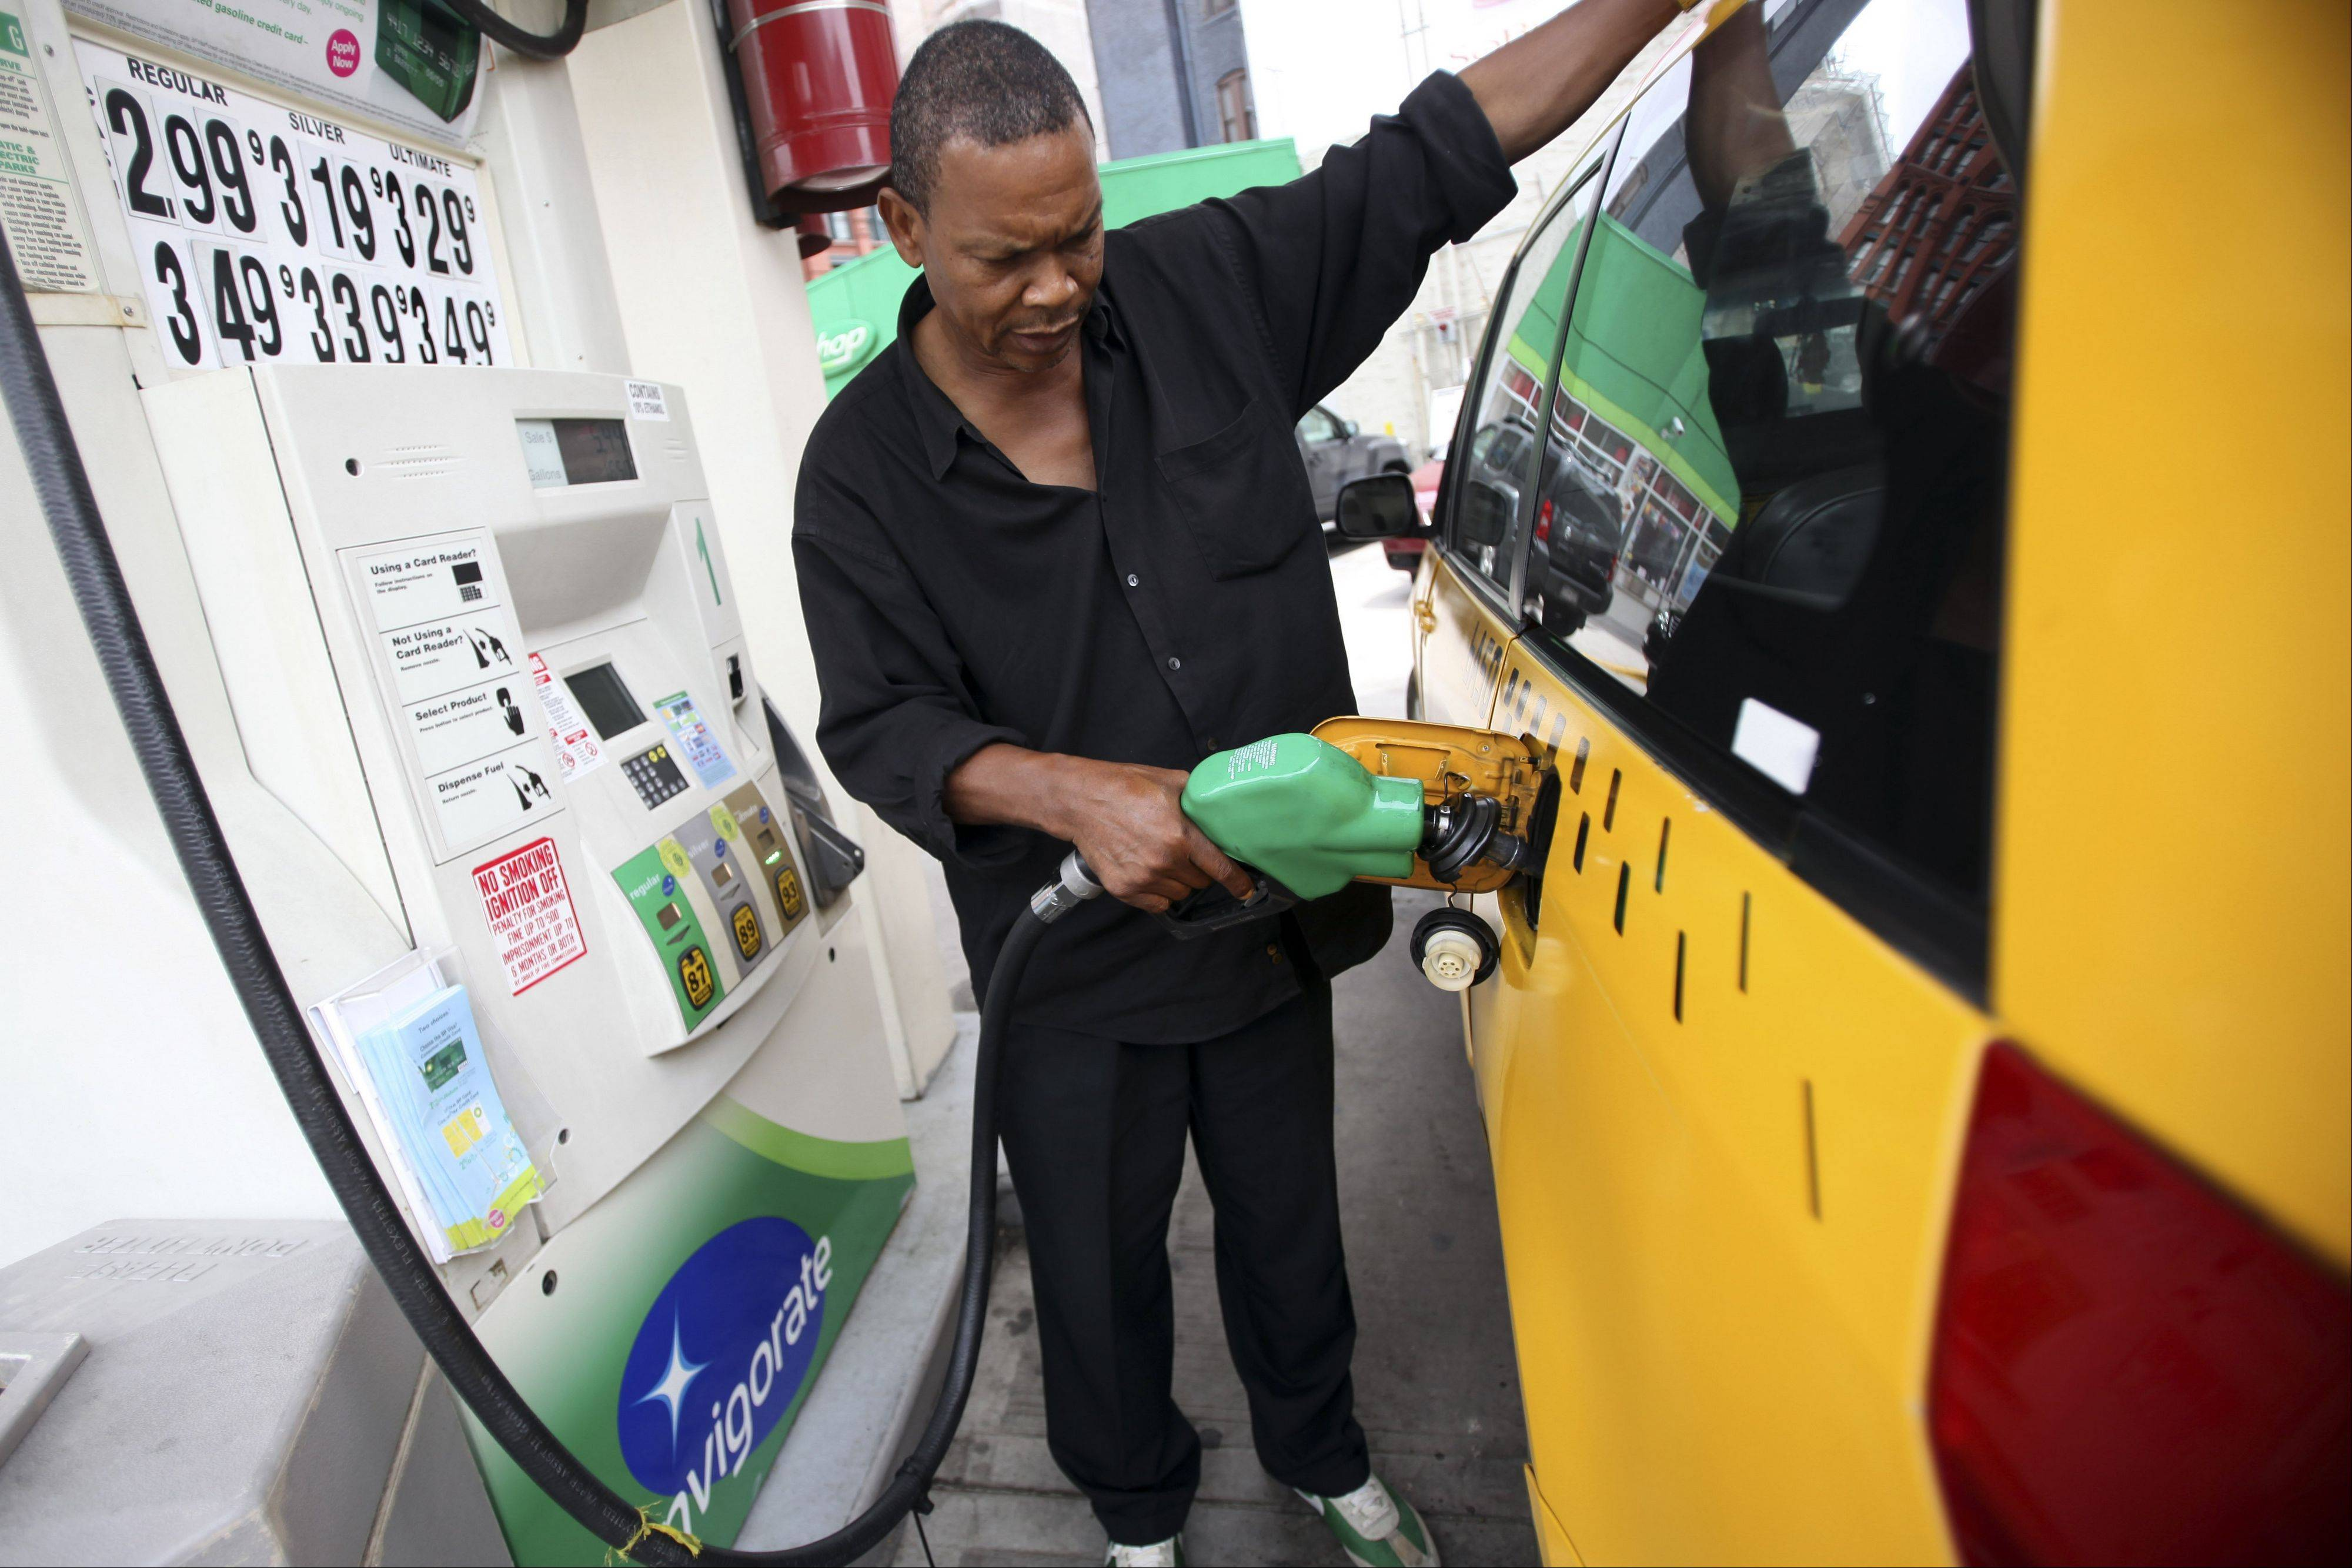 The average price for regular gasoline at U.S. pumps rose 20.32 cents a gallon in the past two weeks to $3.795 a gallon, according to Lundberg Survey Inc.